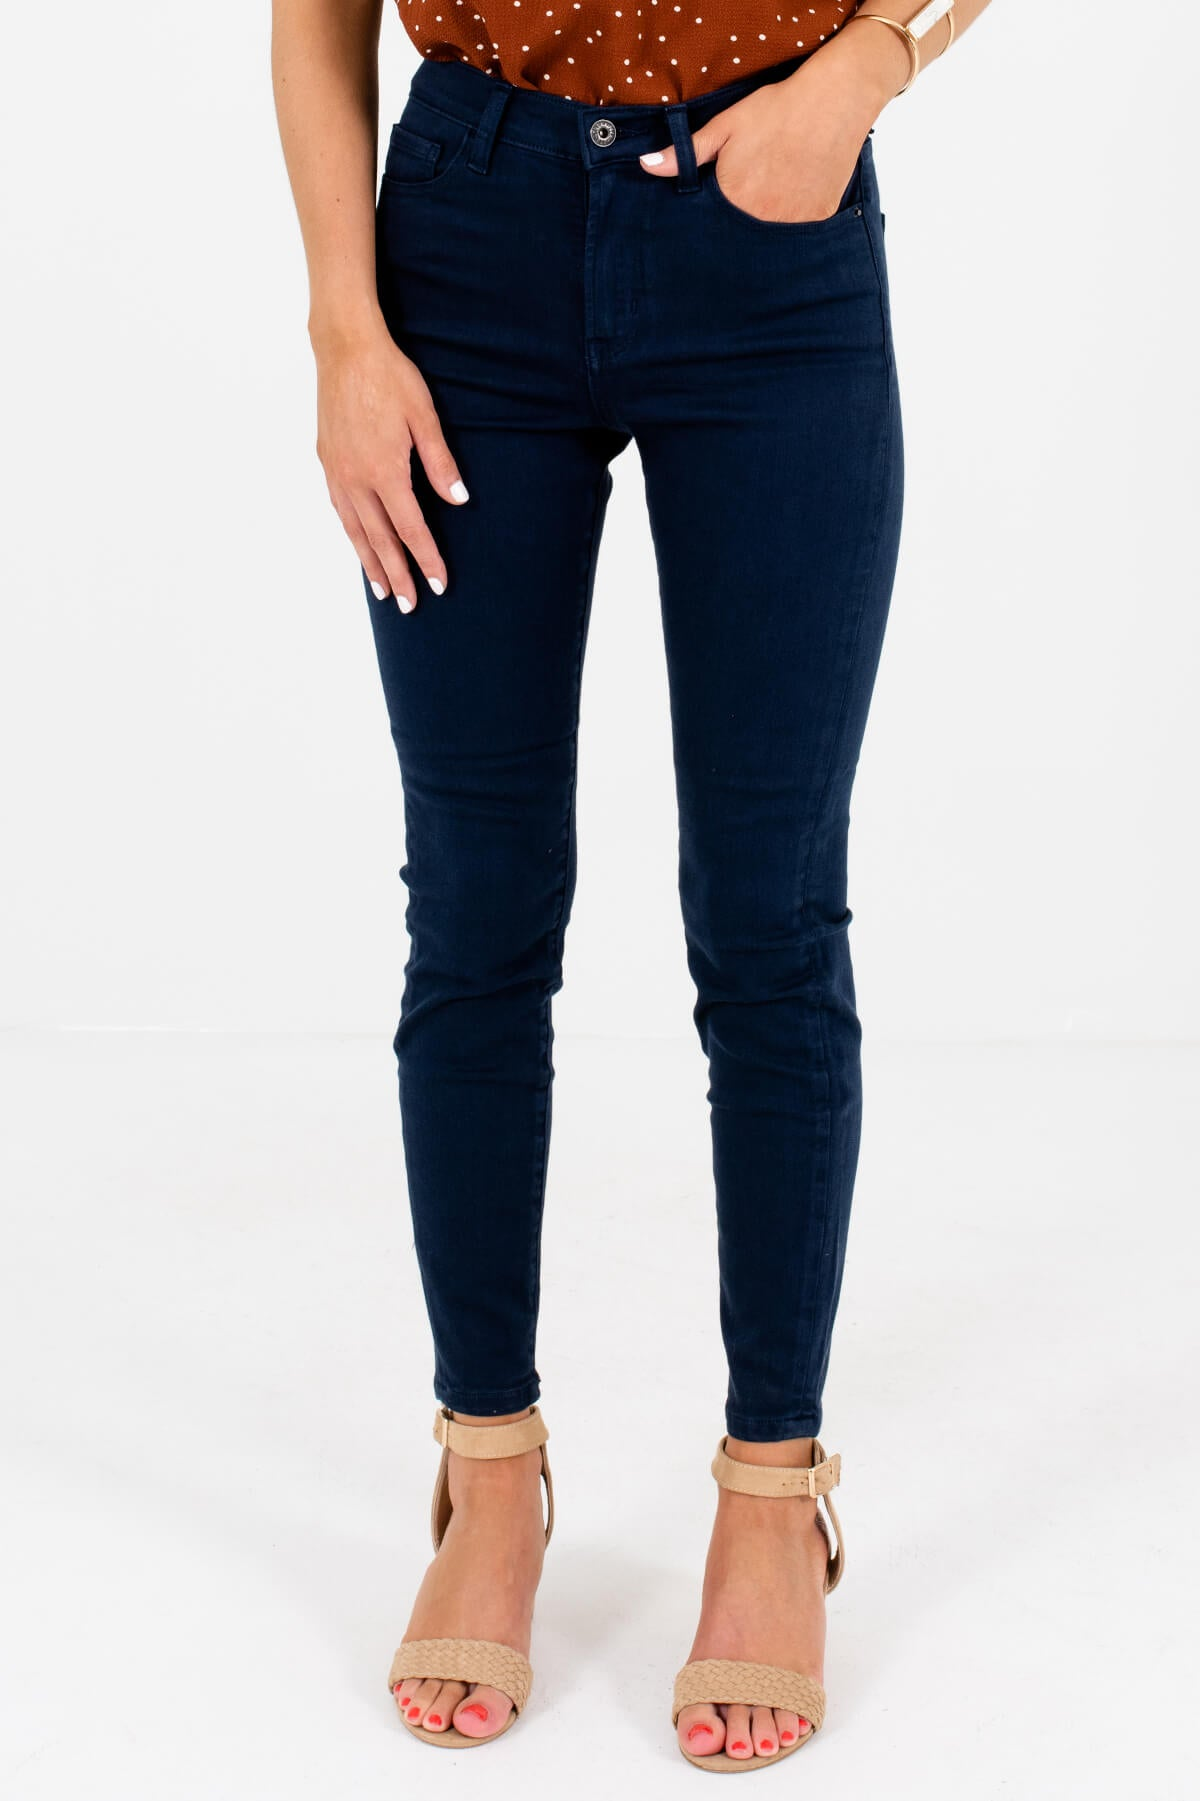 Navy Blue Skinny Fit Boutique Jeans for Women